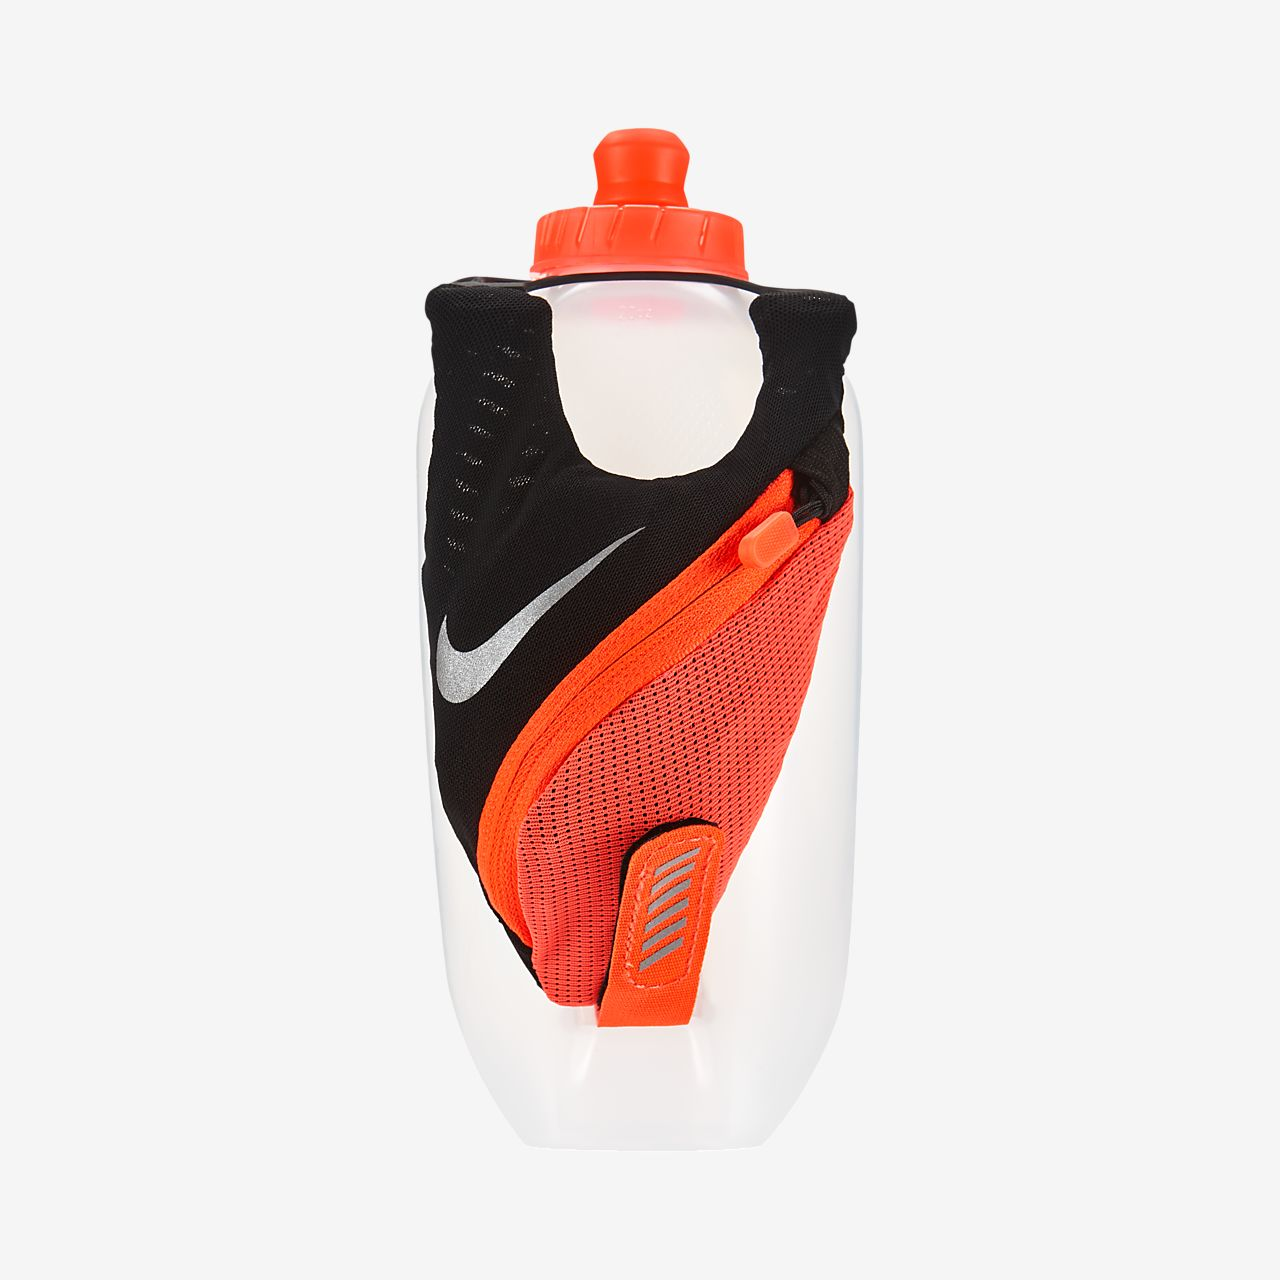 Flaska Nike 20oz Handheld